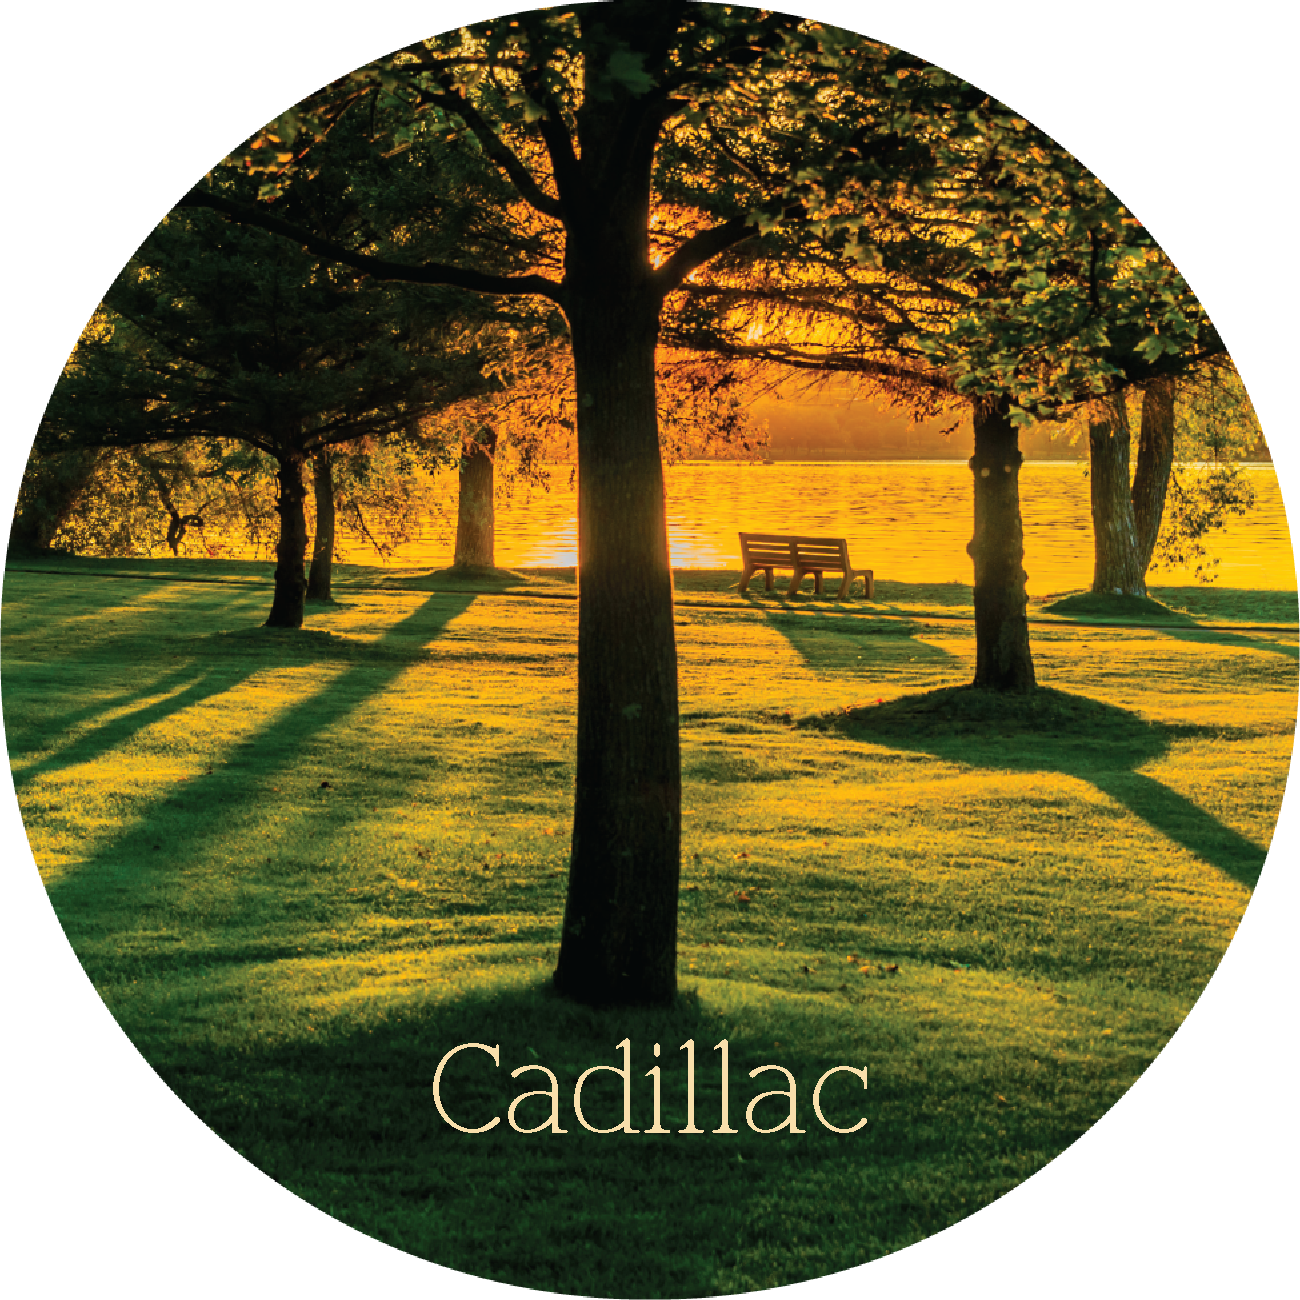 Cadillac Michigan Park Magnet